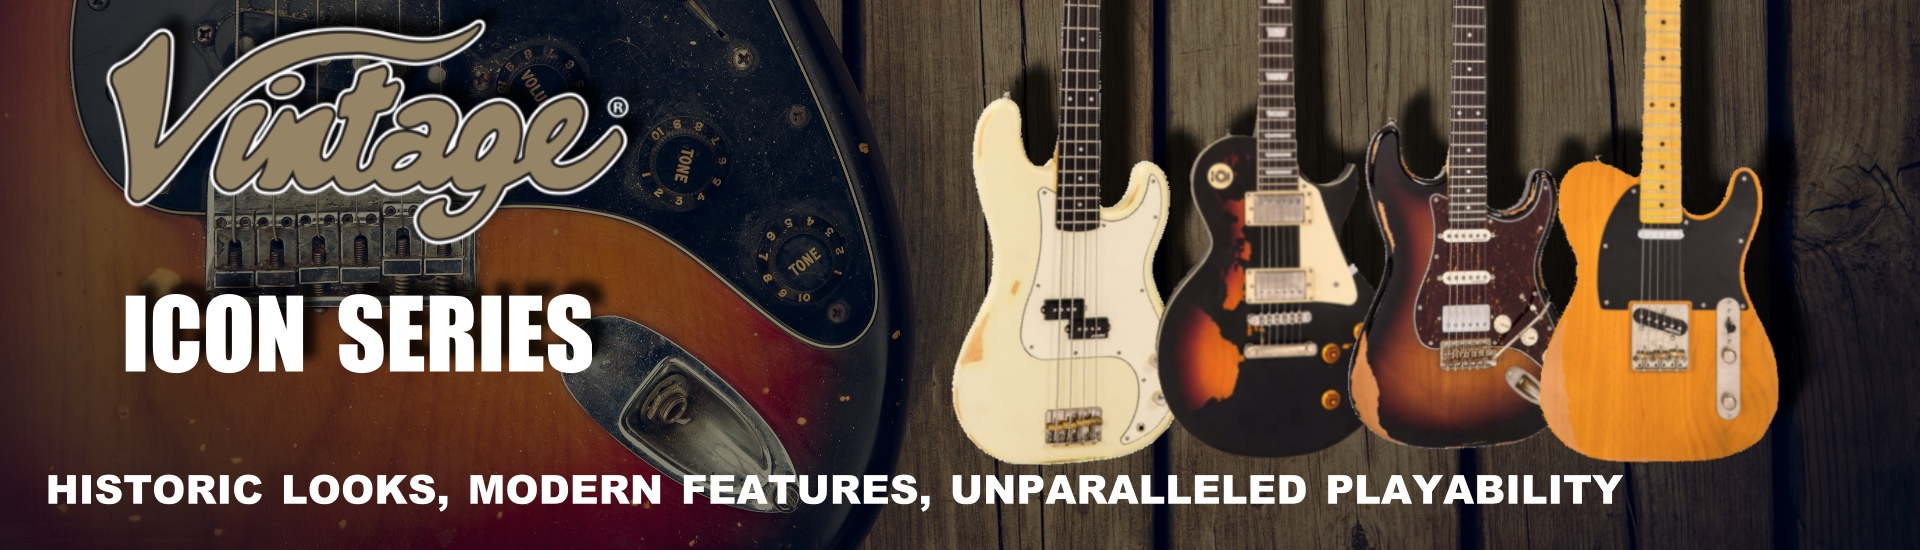 Vintage Icon Series Electric Guitars